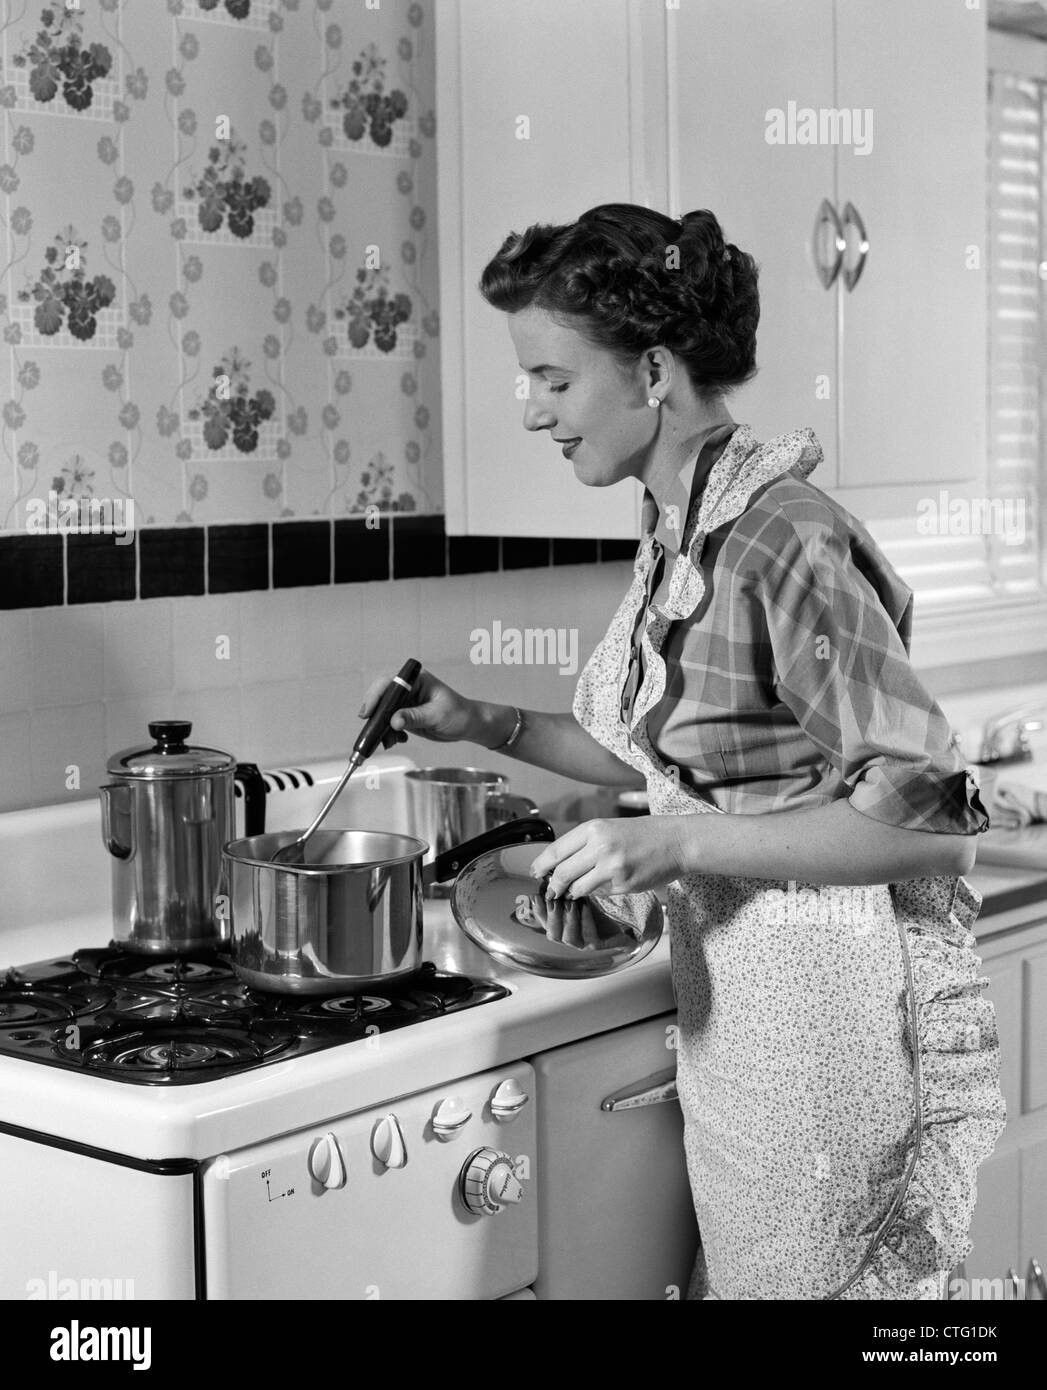 1950s HOUSEWIFE IN APRON STIRRING FOOD IN SAUCEPAN ON STOVE - Stock Image